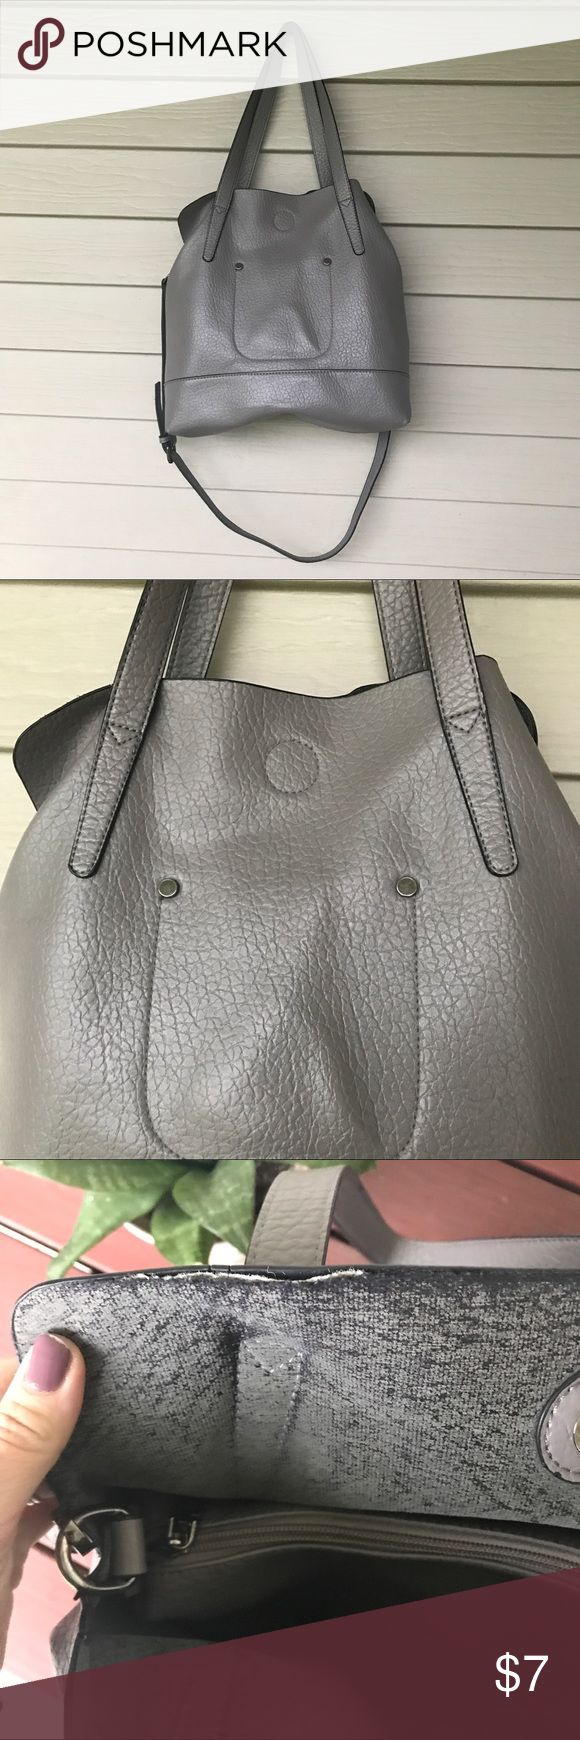 Light grey shoulder/cross body bag Light grey shoulder/cross body bag. Has definite signs of wear (it was well loved 😉), but there's still some life left! The middle section can be removed to create more space and could even be used as a clutch! Bags Shoulder Bags